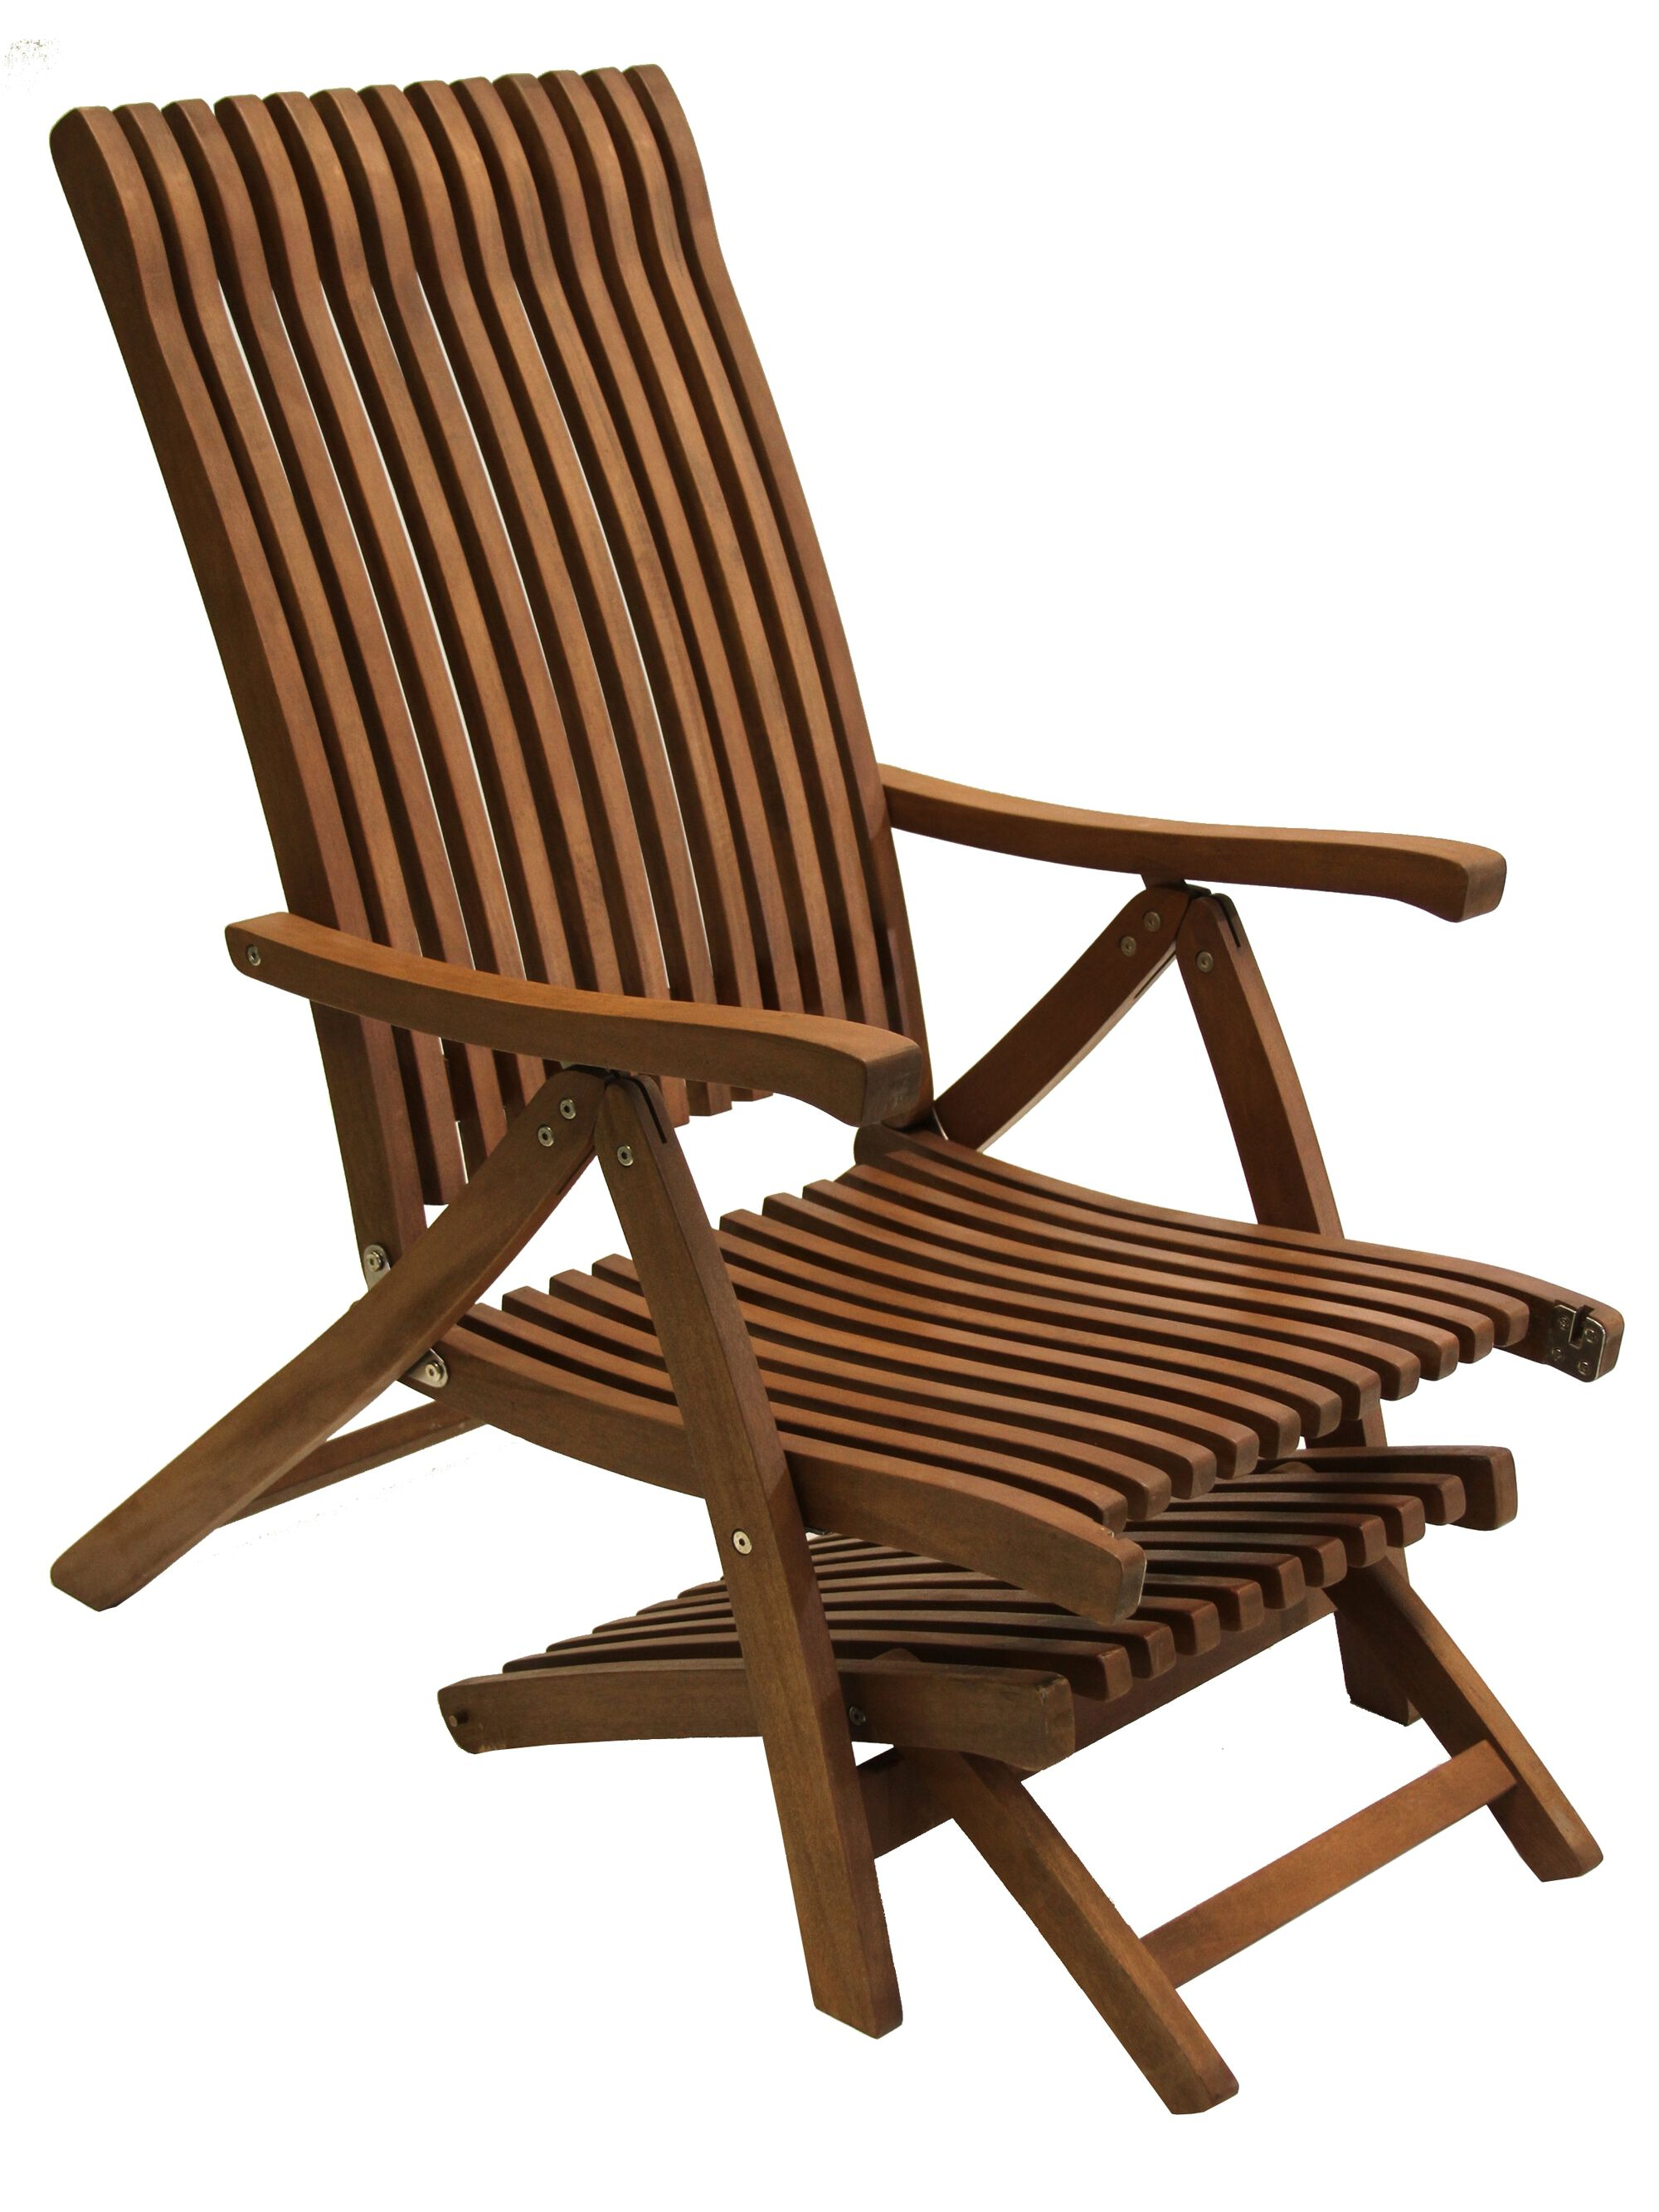 Folding Chaise Lounge Chairs Outdoor - Wood